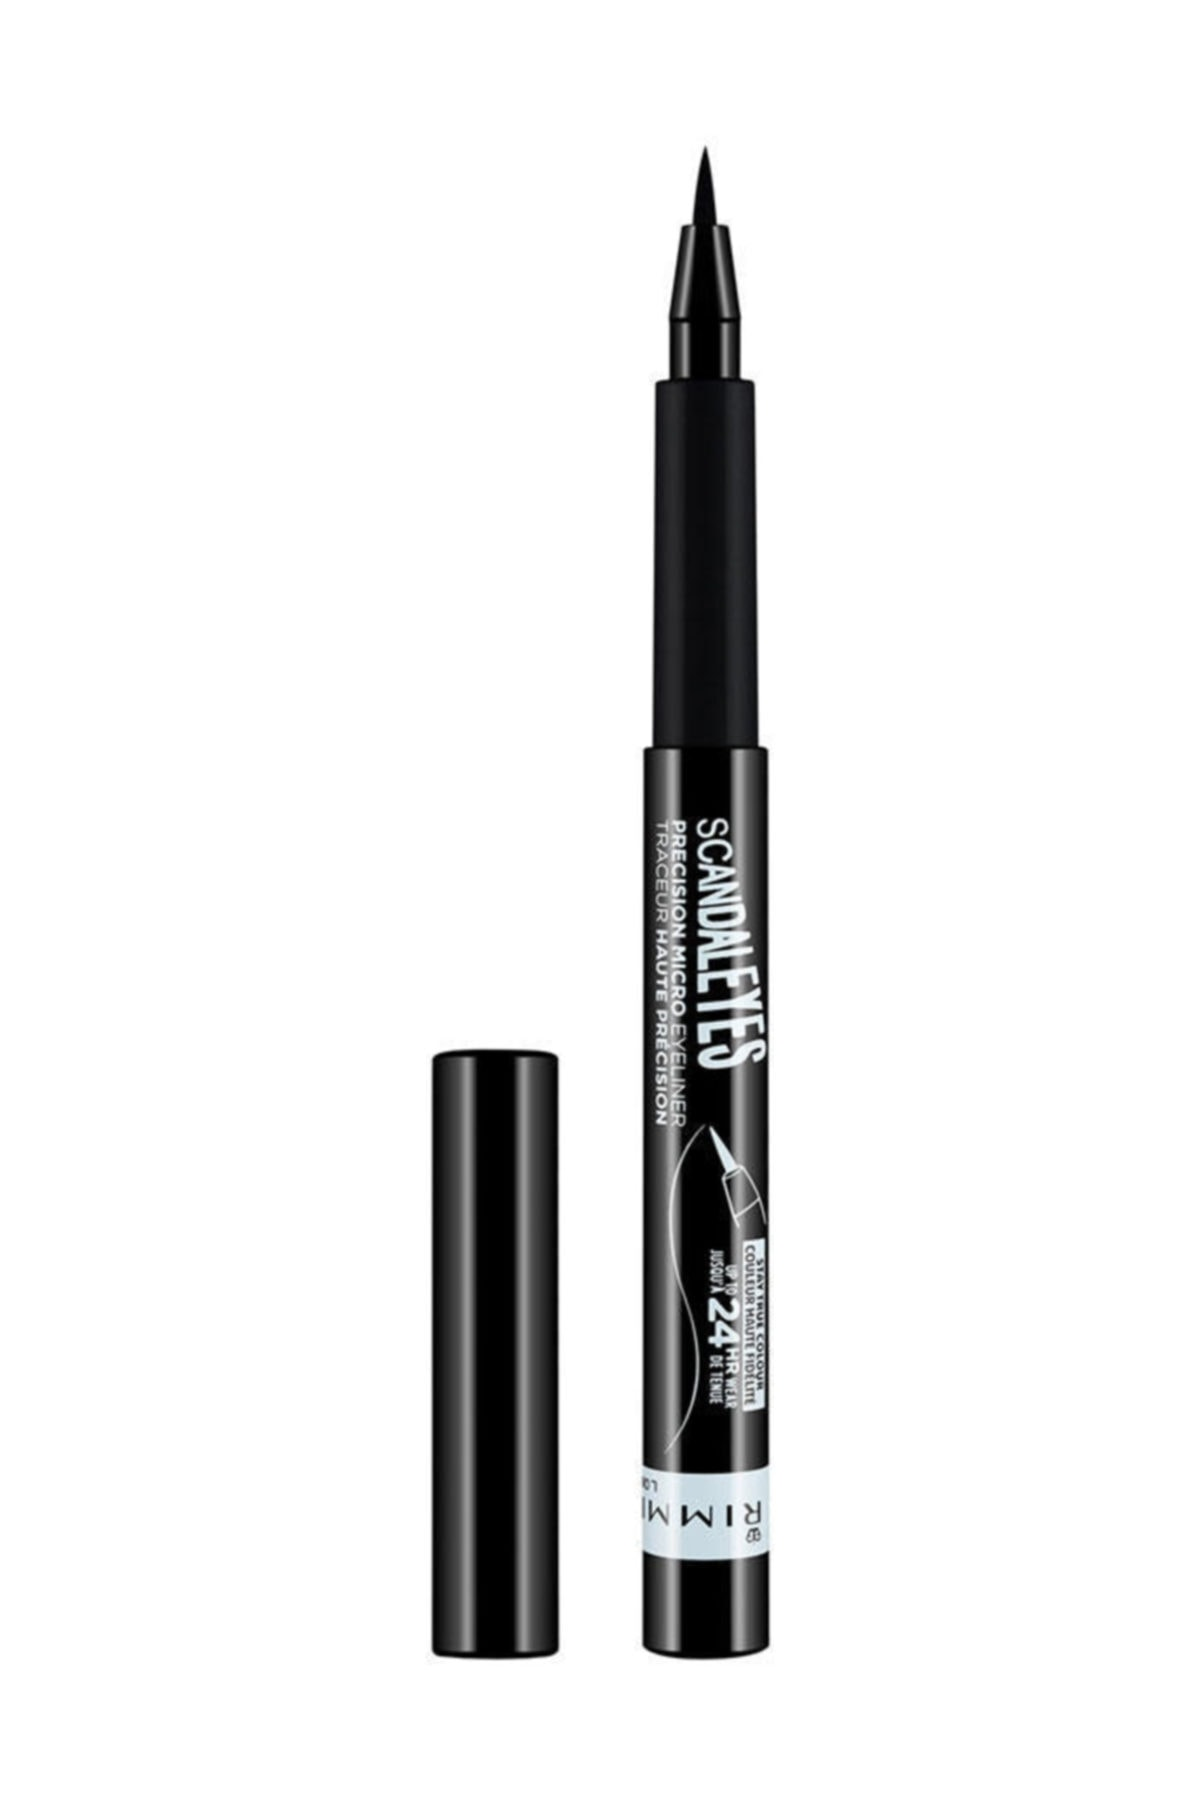 RIMMEL LONDON Siyah Eyeliner - Scandal'Eyes Precision Micro Eyeliner Black 3614222758778 1